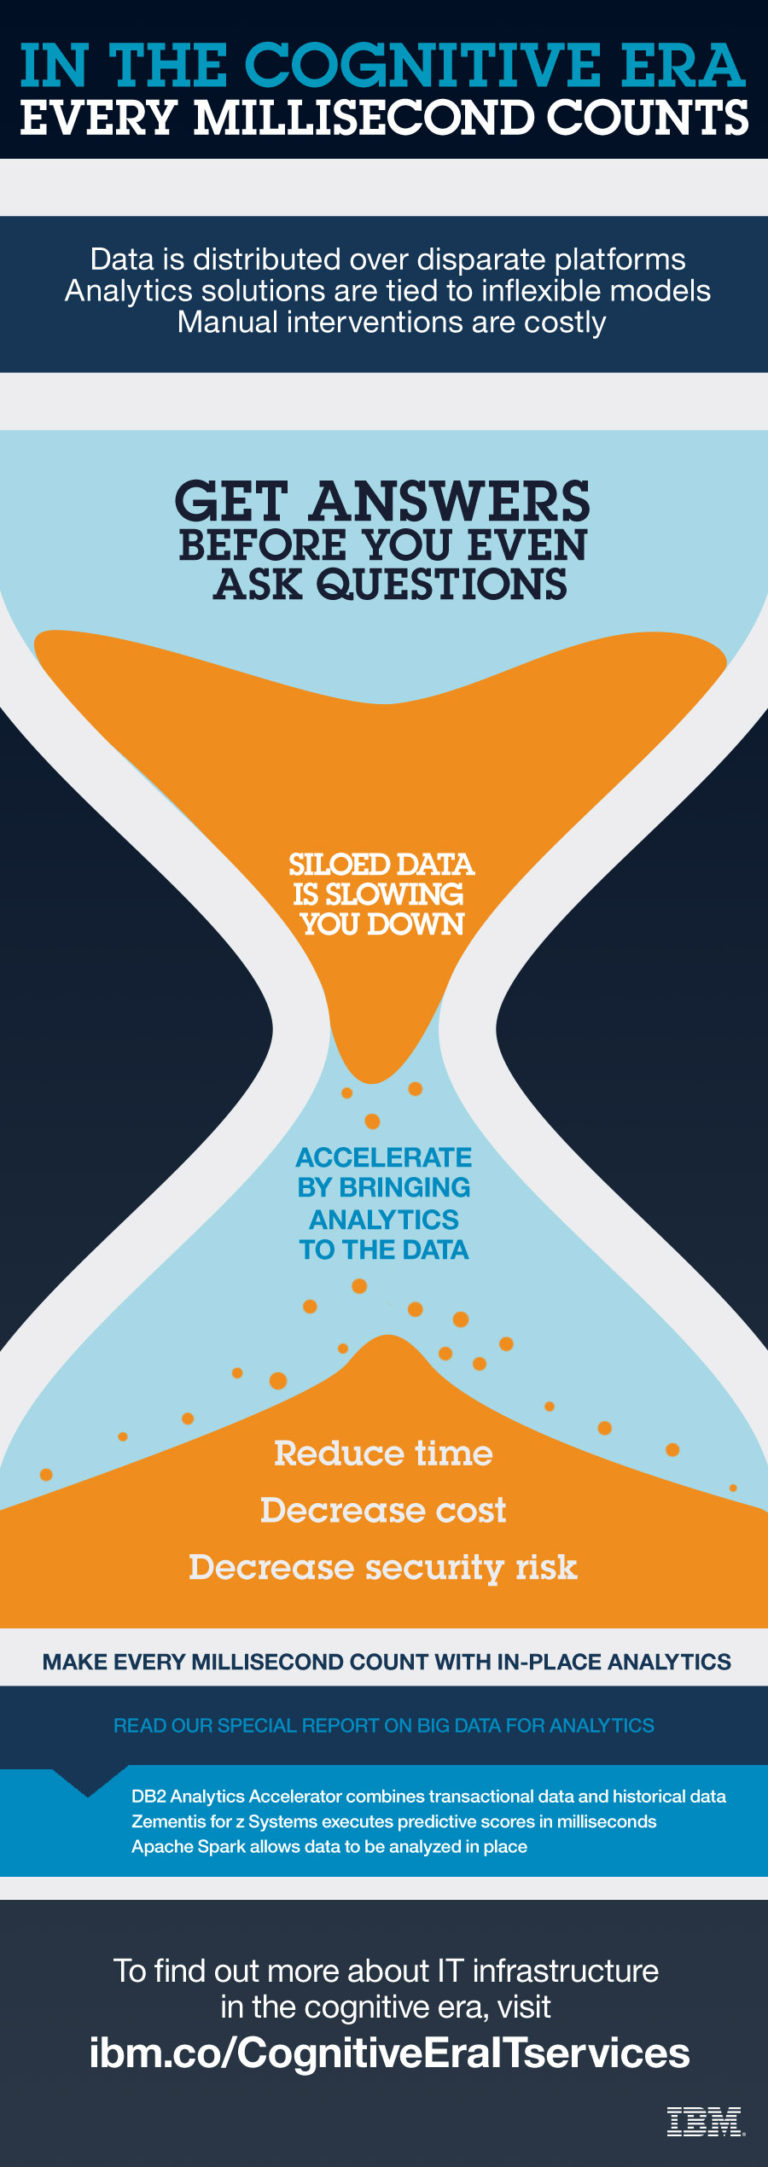 5397_IBM_Systems_Social_Infographic_Every_Millisecond